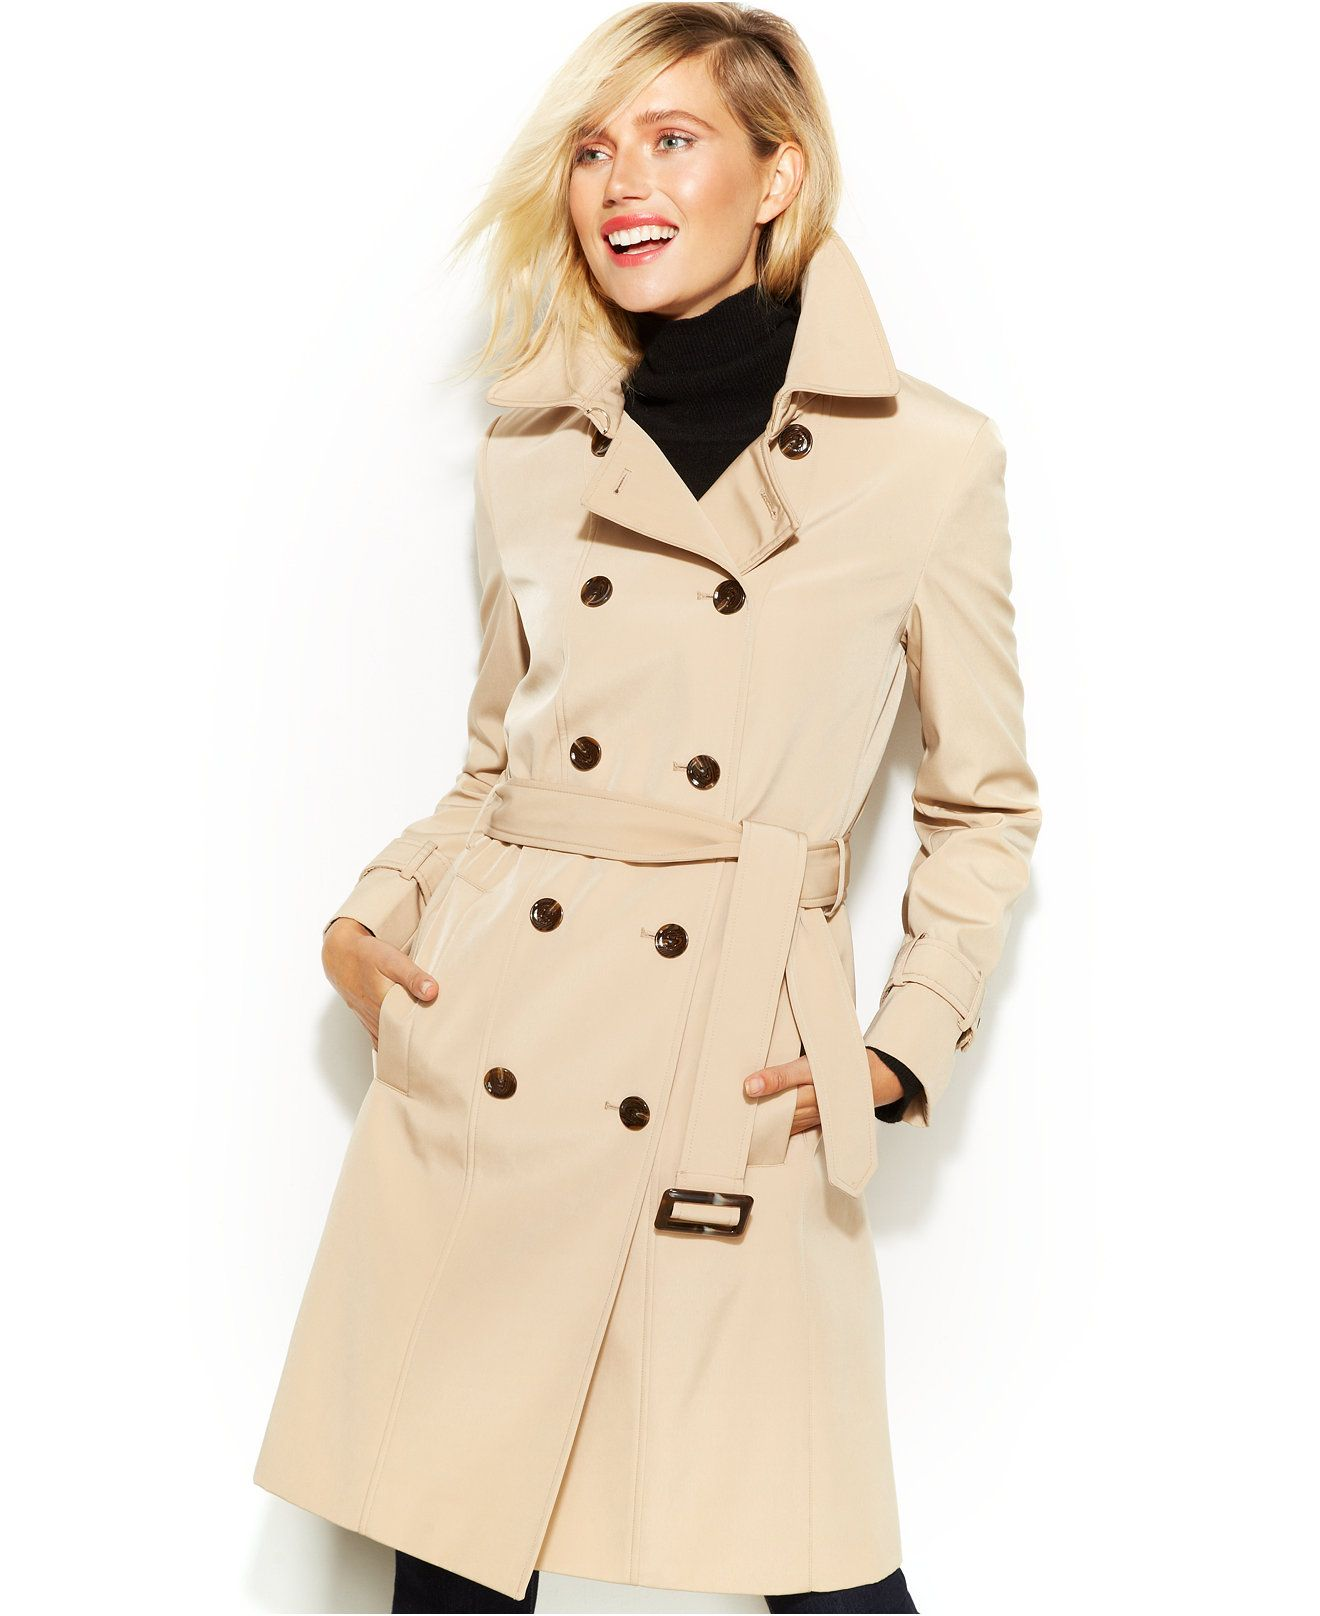 465365b97a4 Calvin Klein Double-Breasted Belted Trench Coat - Coats - Women - Macy s